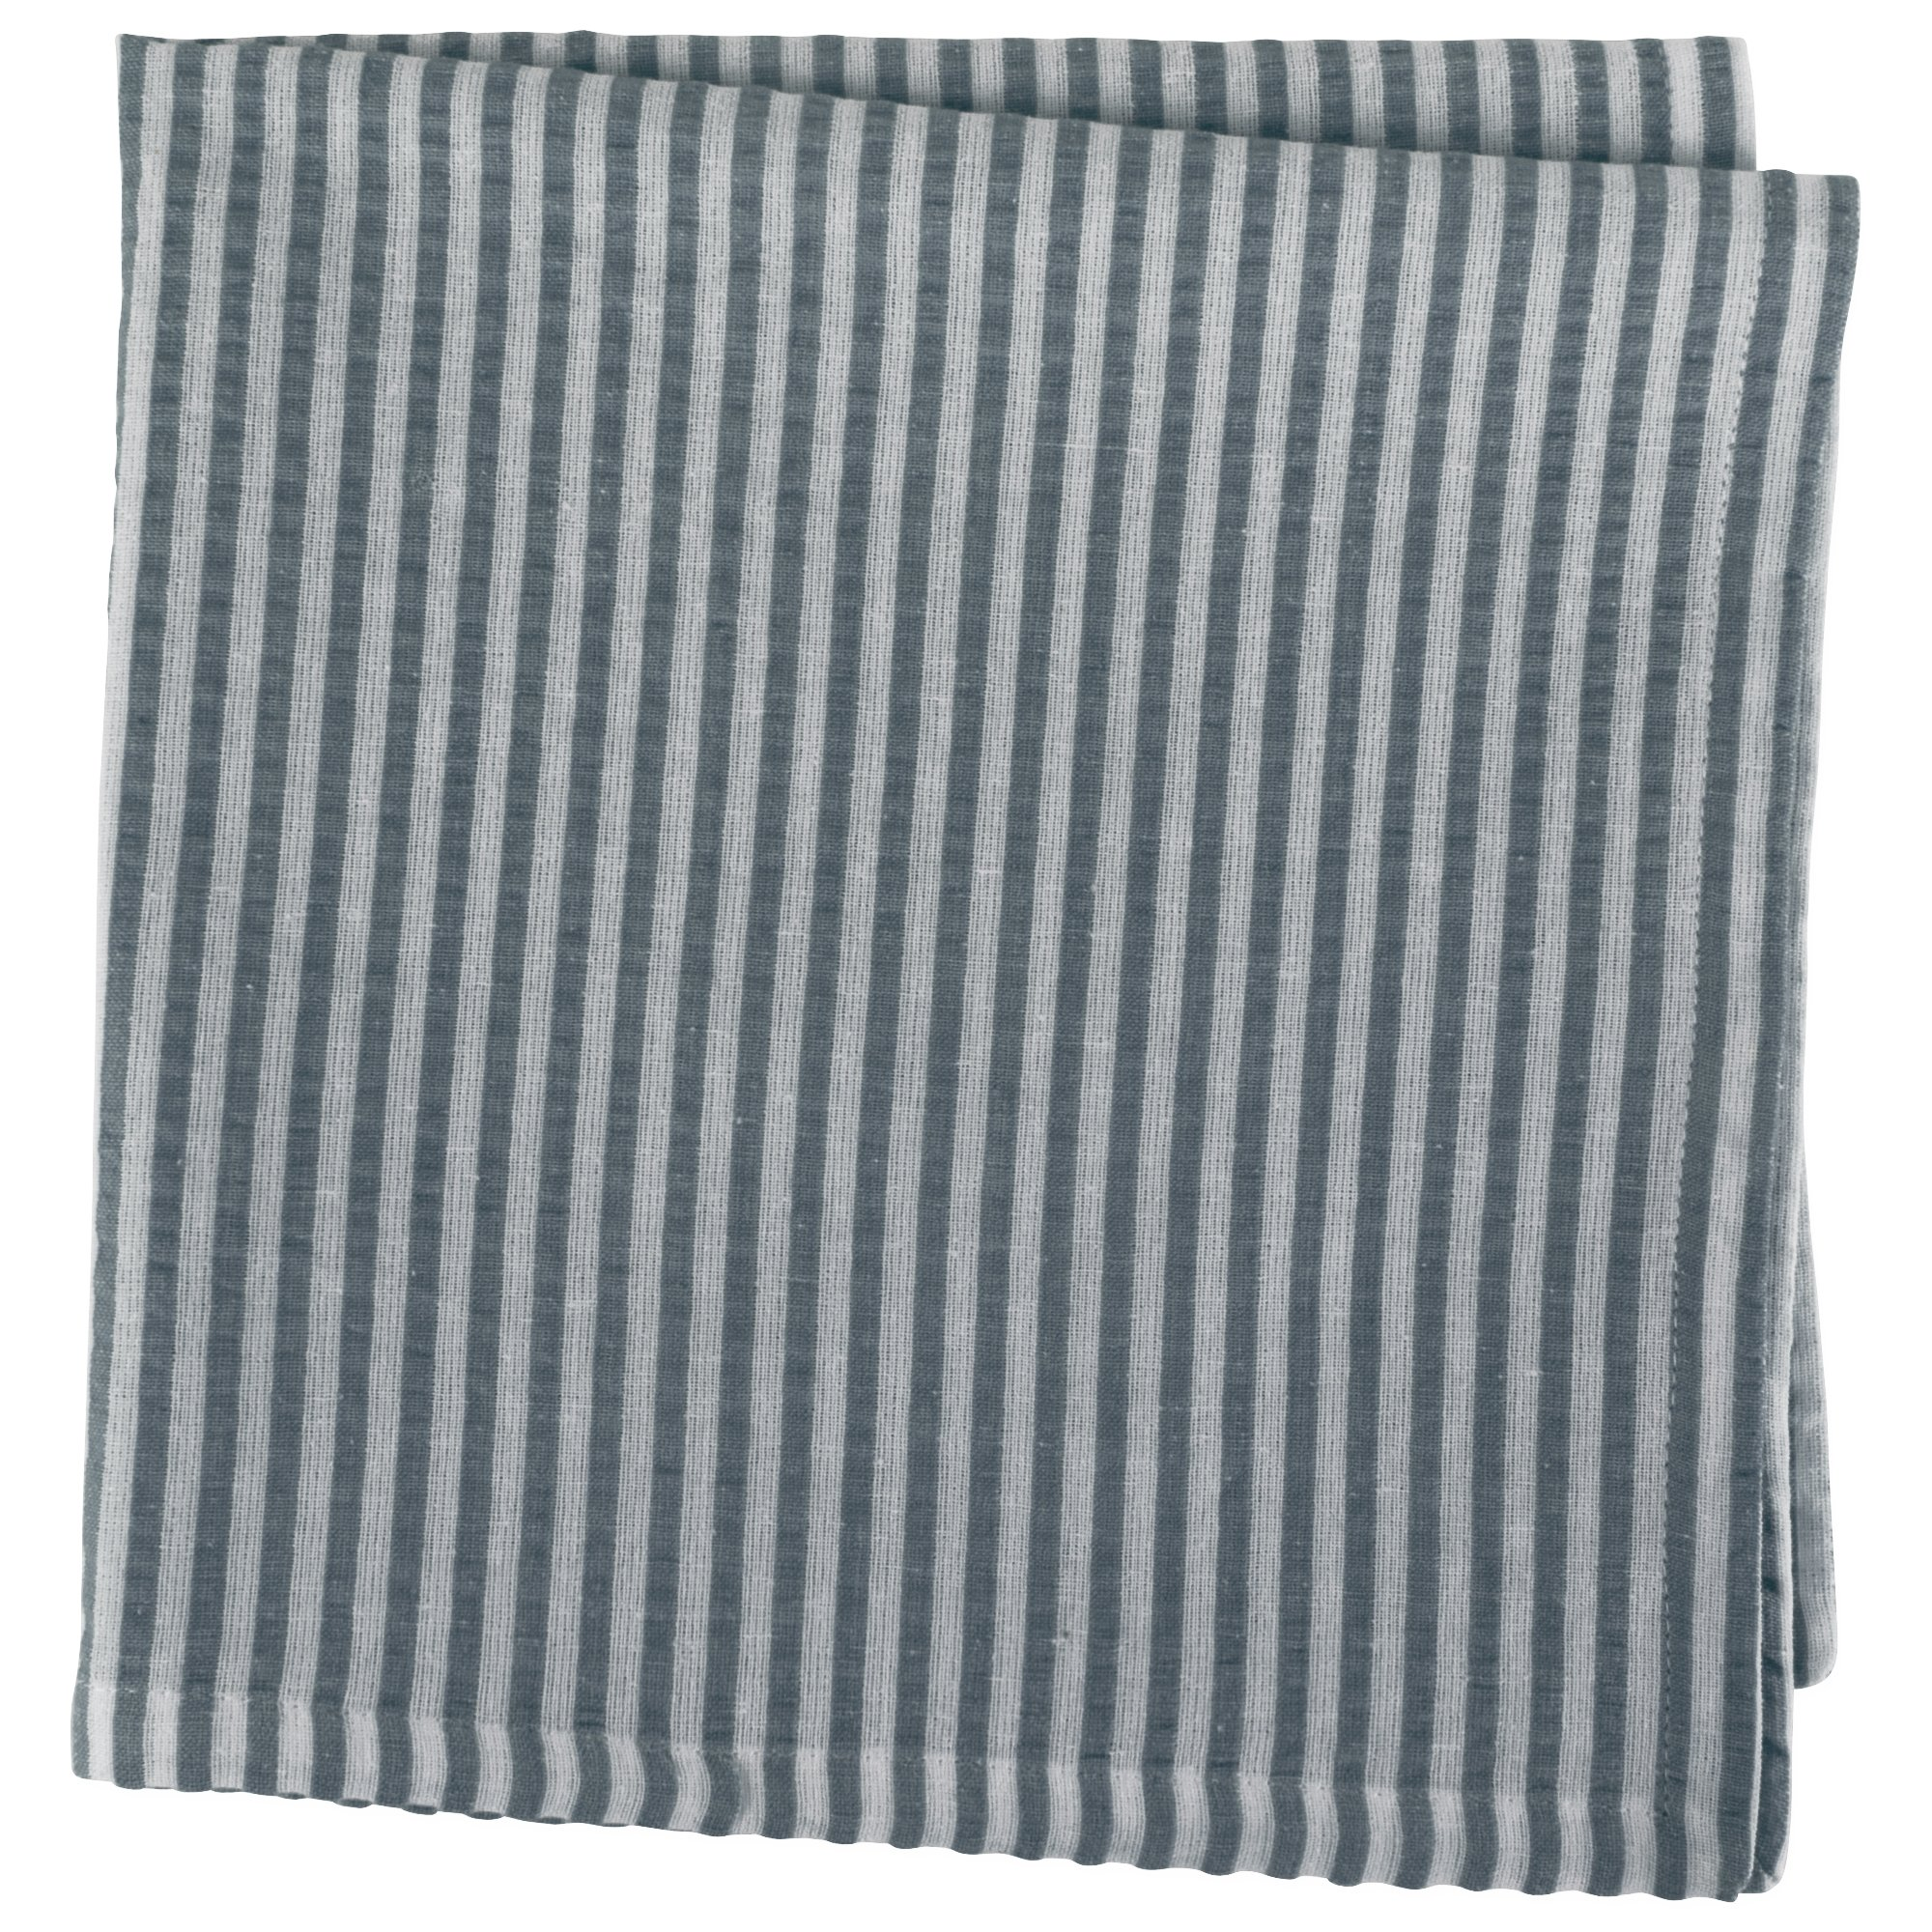 DII Cotton Seersucker Striped Napkin for Brunch, Weddings, Showers, Parties and Everyday Use, 20 x 20'', Mineral Gray and White by DII (Image #3)